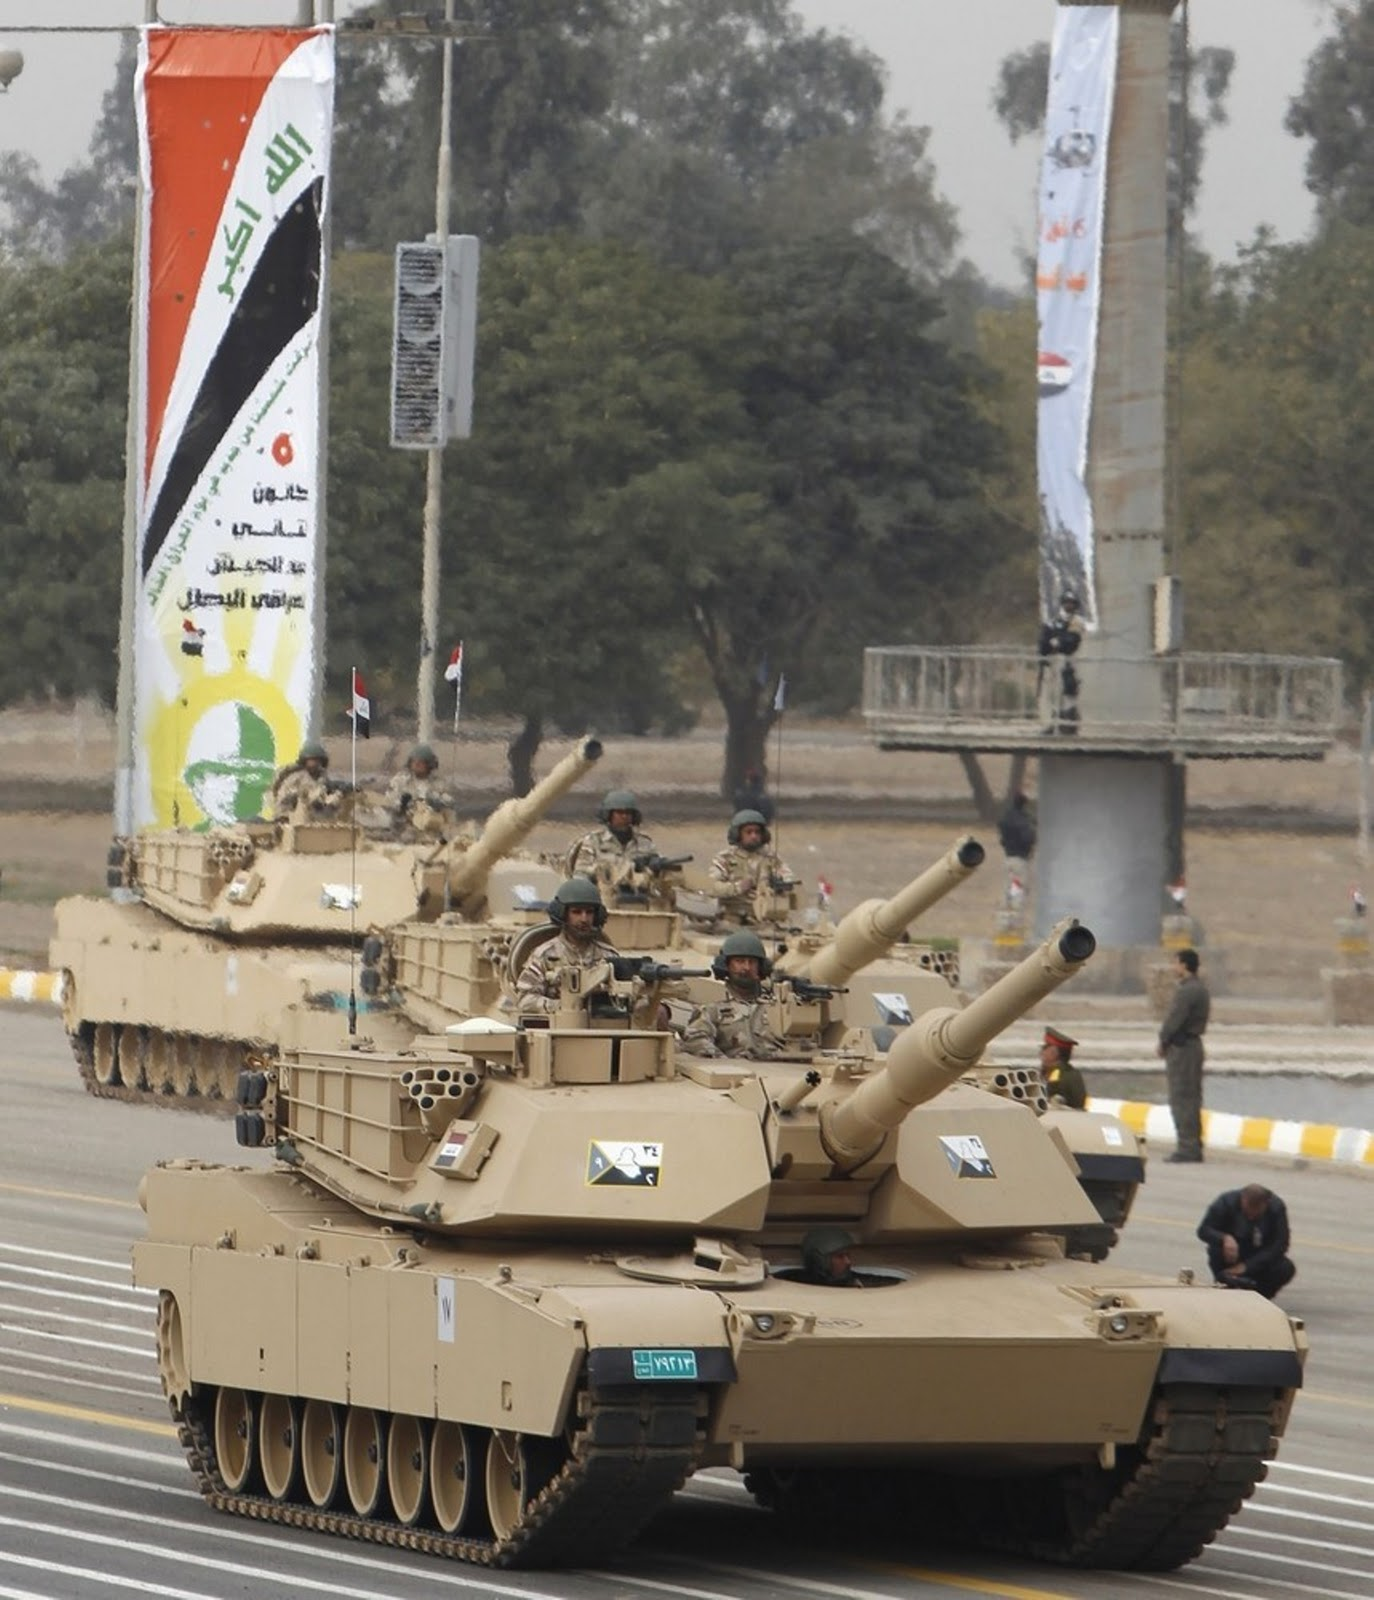 irak Iraqi+Army+soldiers+are+seen+on+M1A1+Abrams+third-generation+main+battle+tank+produced+in+the+United+States+at+the+Monument+of+the+Unknown+Soldier+during+the+Army+Day+celebrations+in+Baghdad%252C+%25281%2529